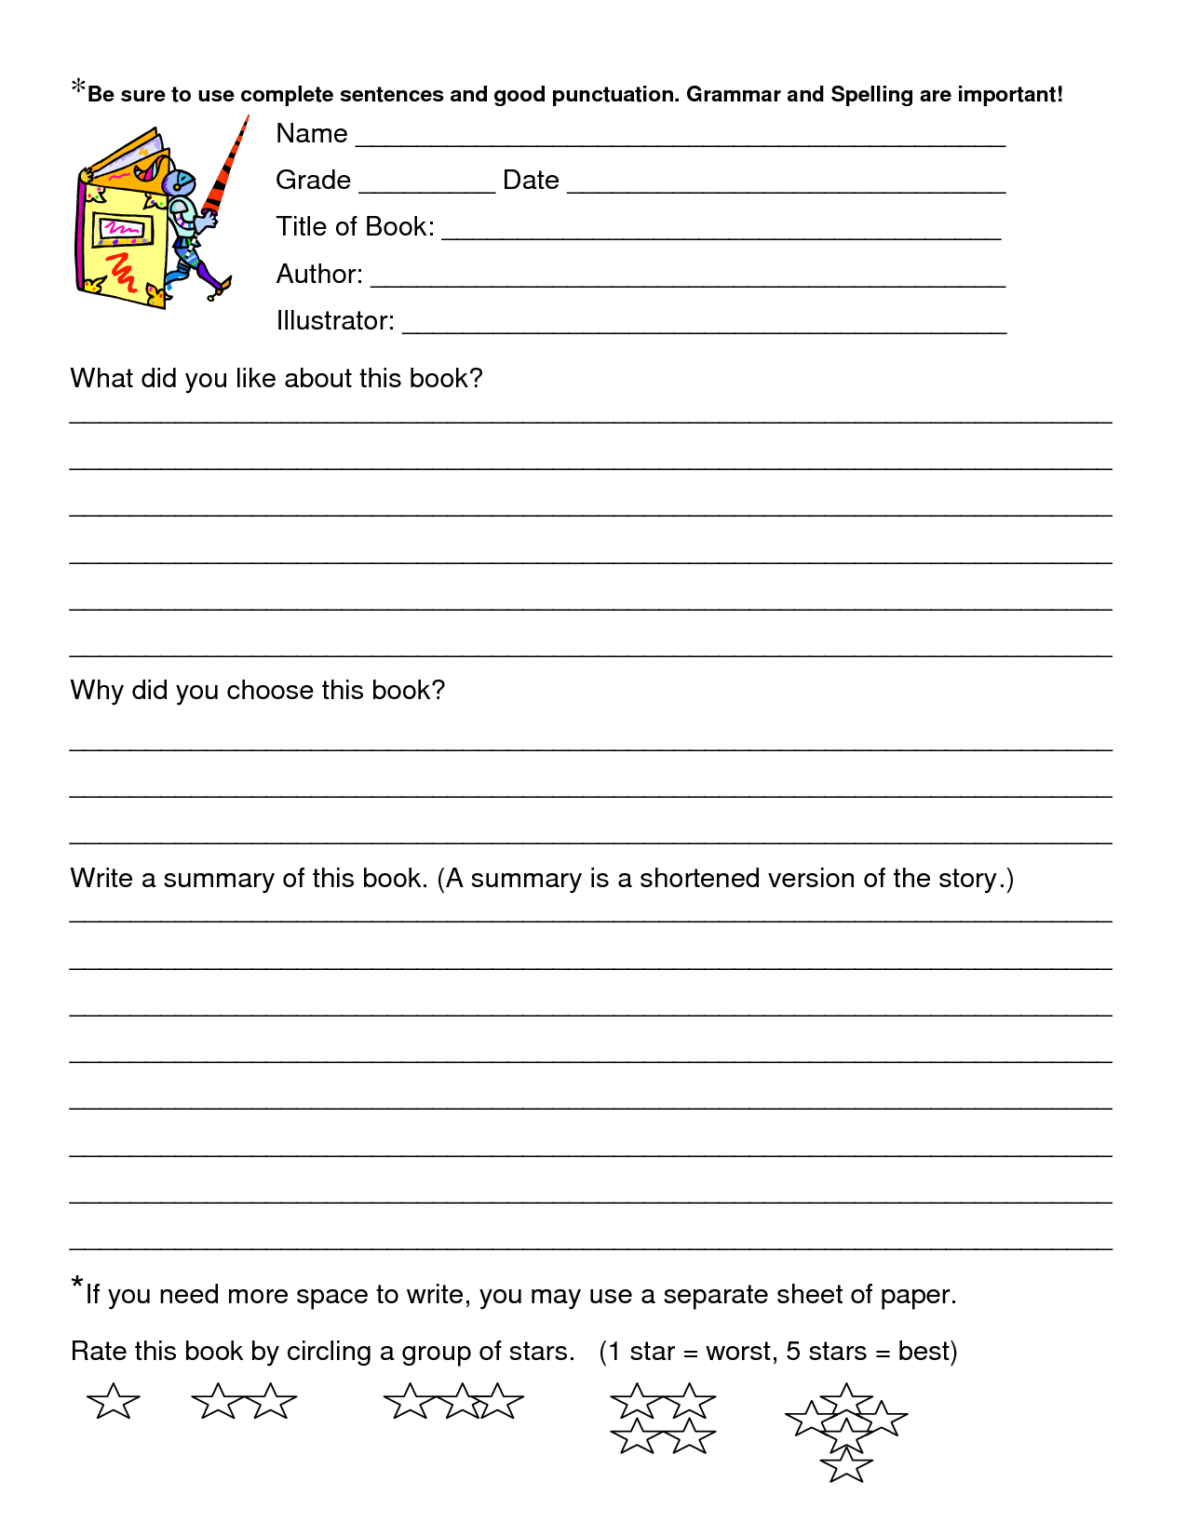 medium resolution of Book Review Worksheet Grade 5   Printable Worksheets And with Book Report  Template 6Th Grade   Book report templates